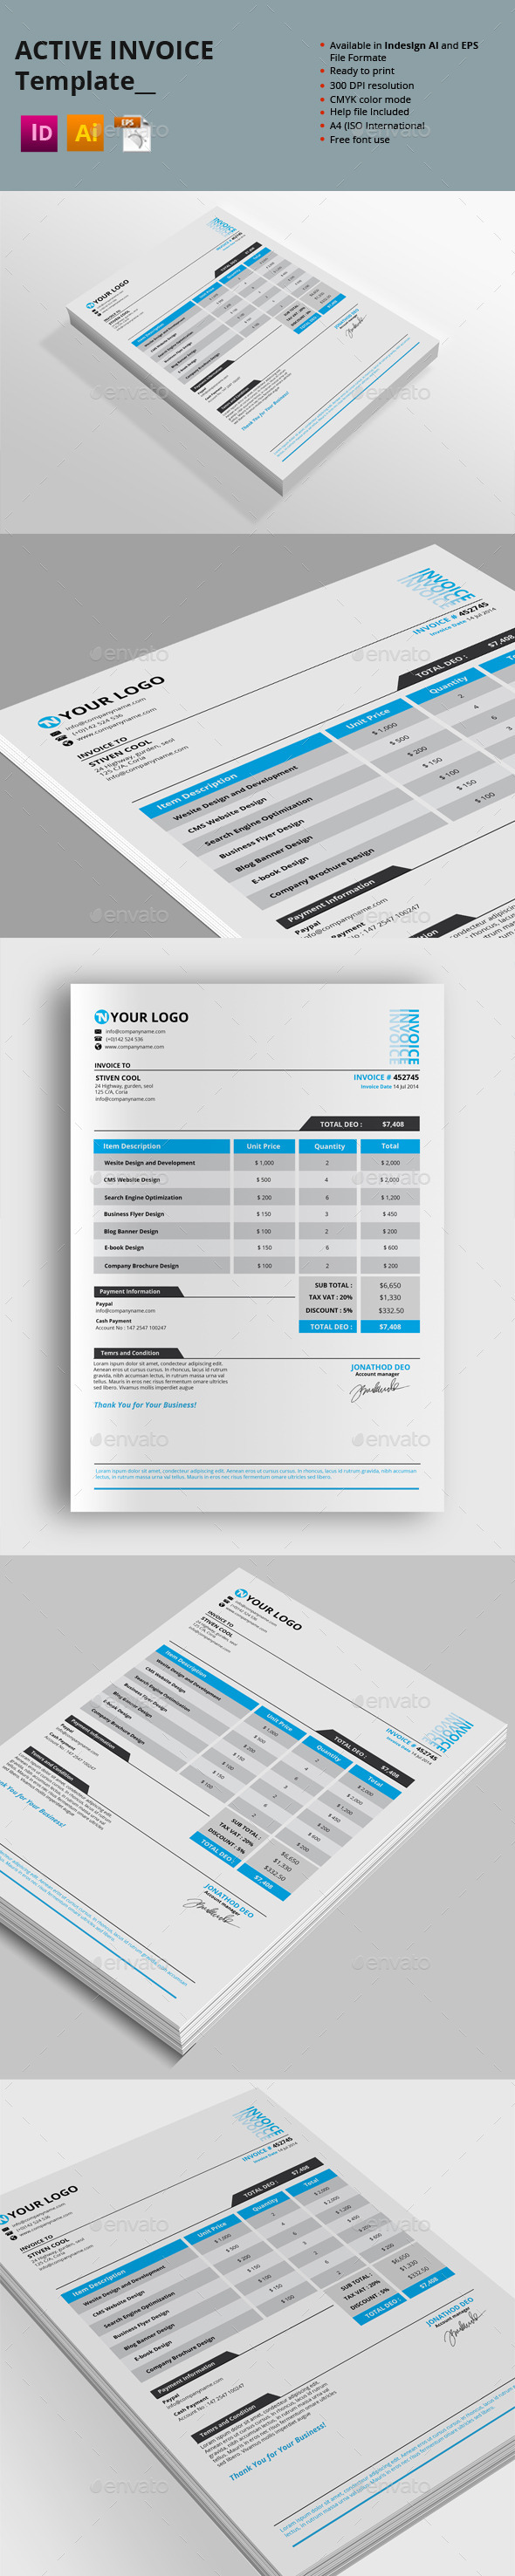 Active Invoice Templates - Proposals & Invoices Stationery